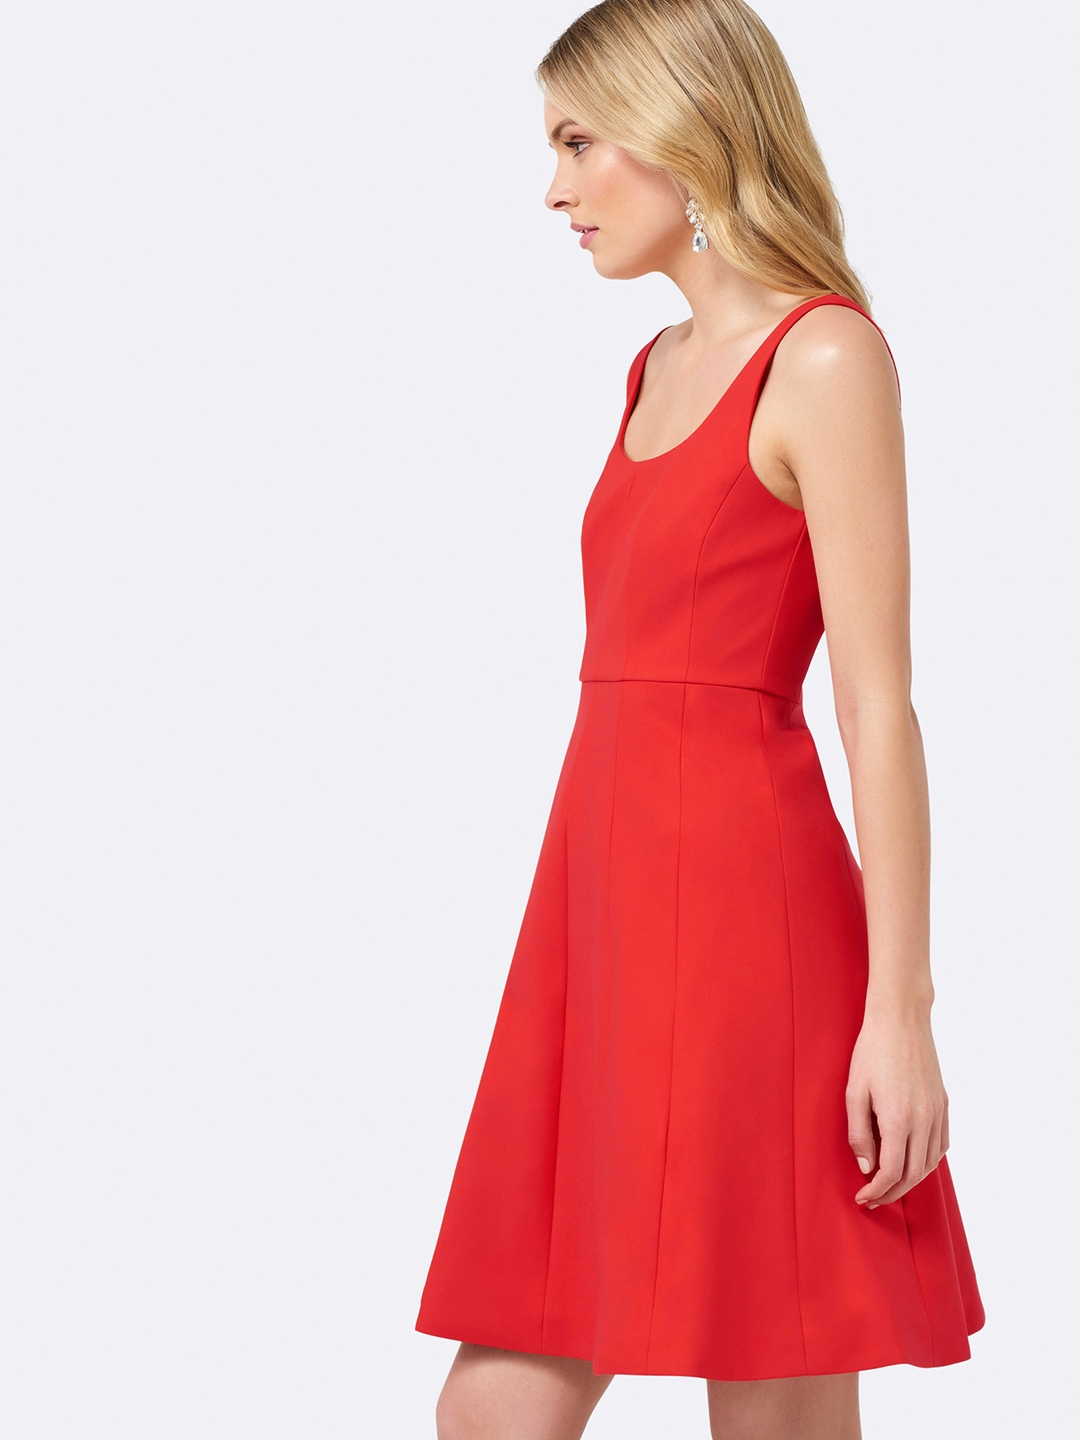 9d11624e233 Buy Forever New Women Red Solid Fit And Flare Dress - Dresses for ...